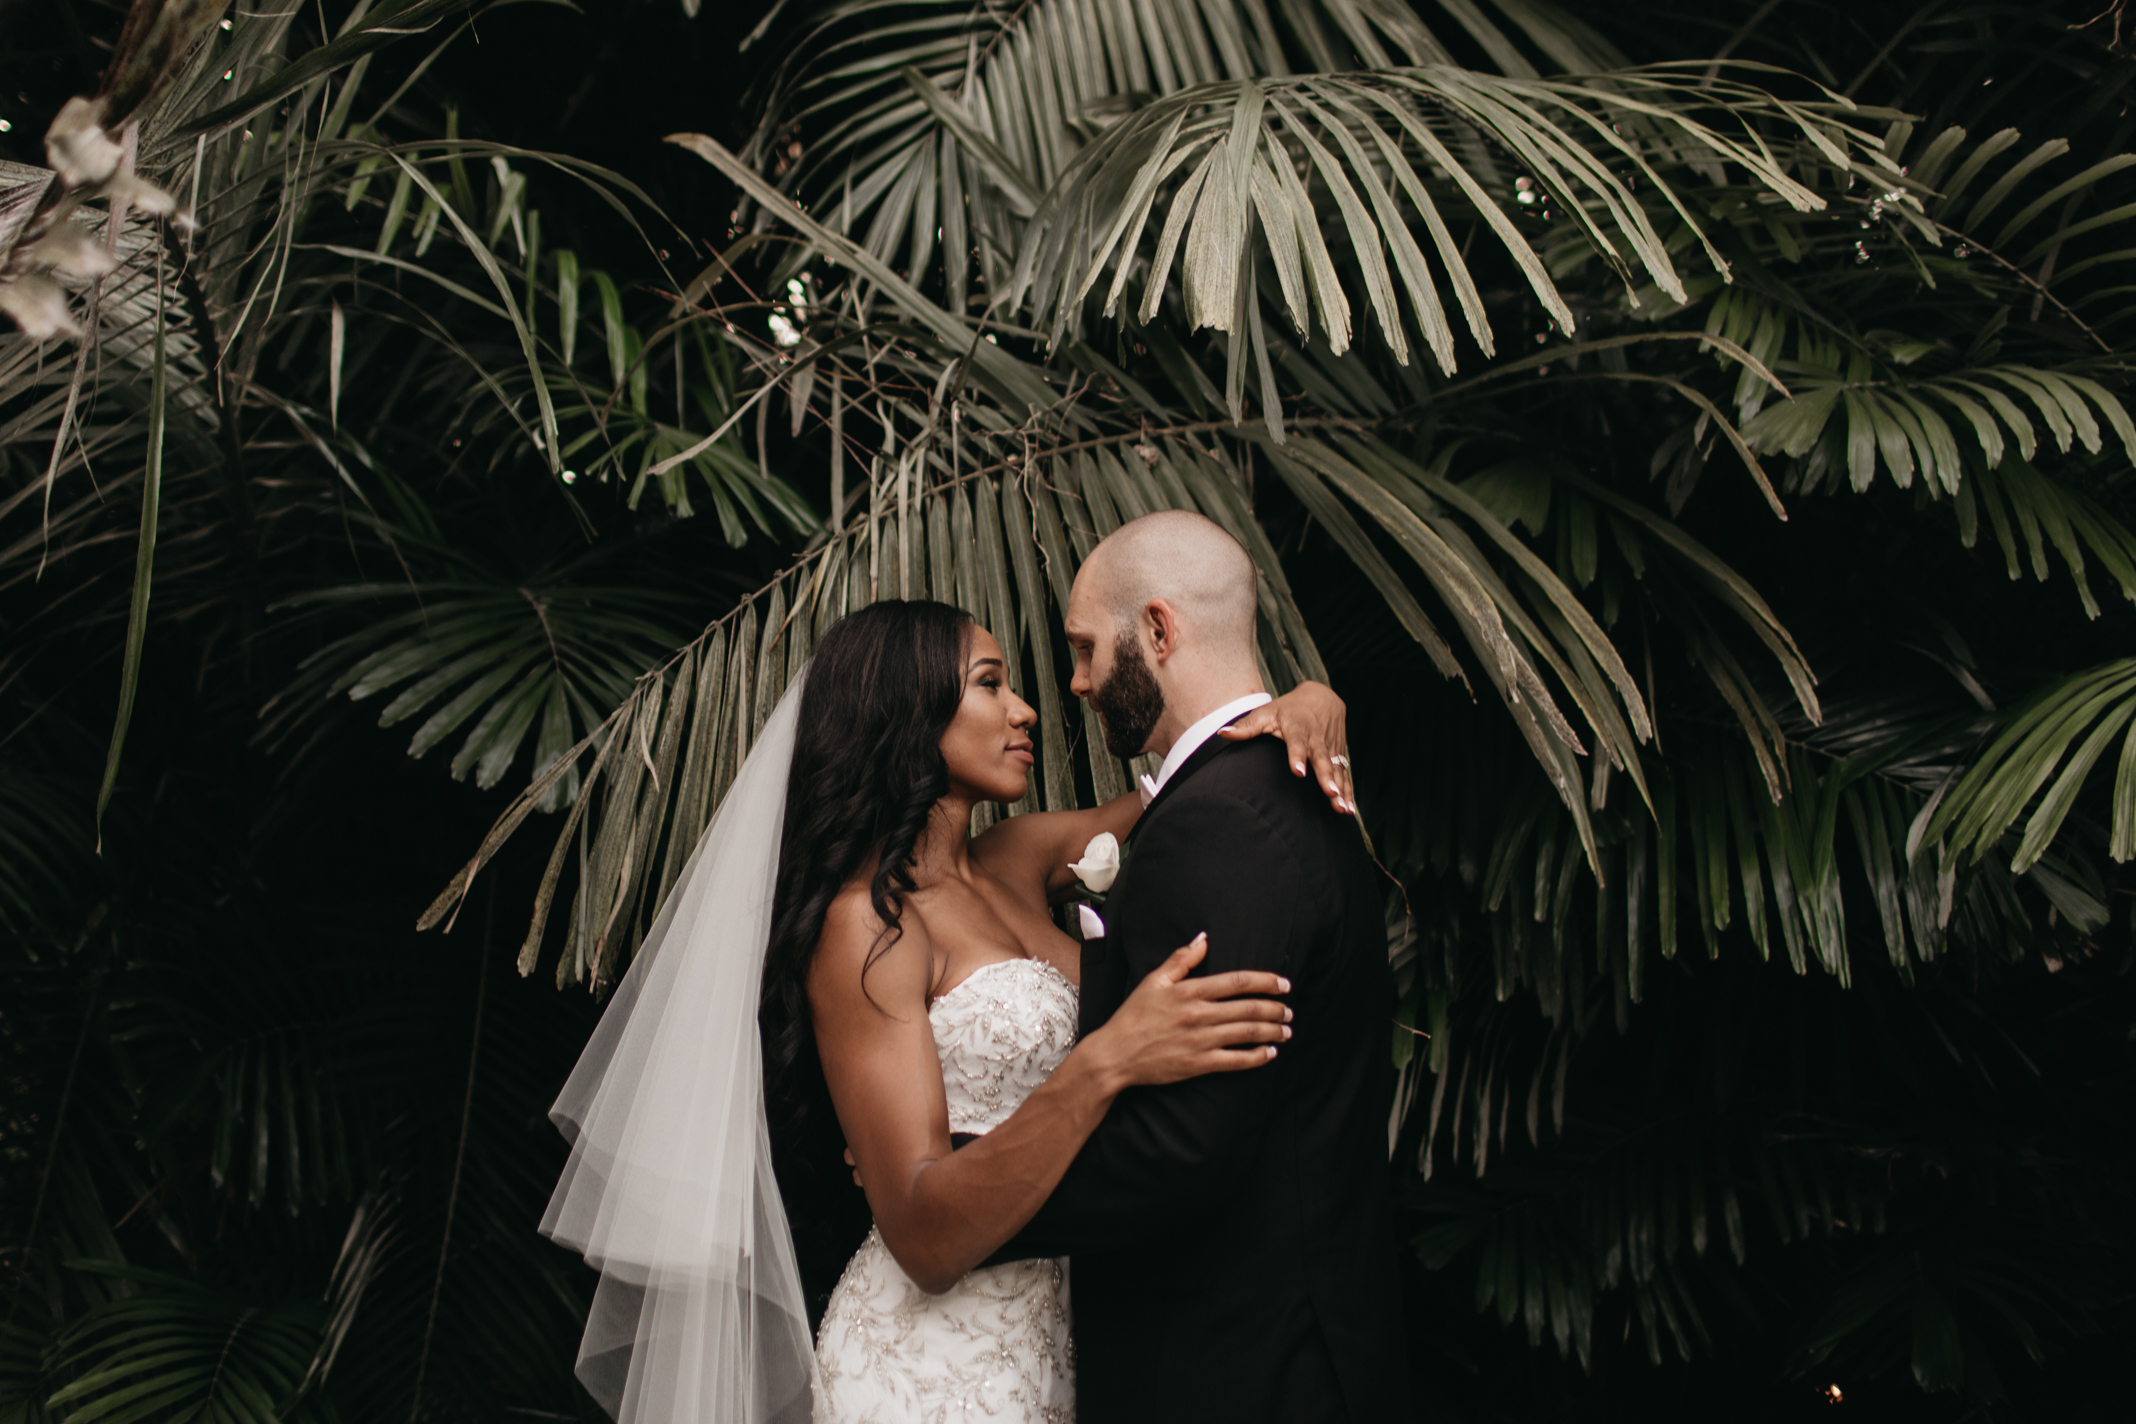 Ryan + Amendha | Homestead, Florida | The Cooper Estate, Homestead